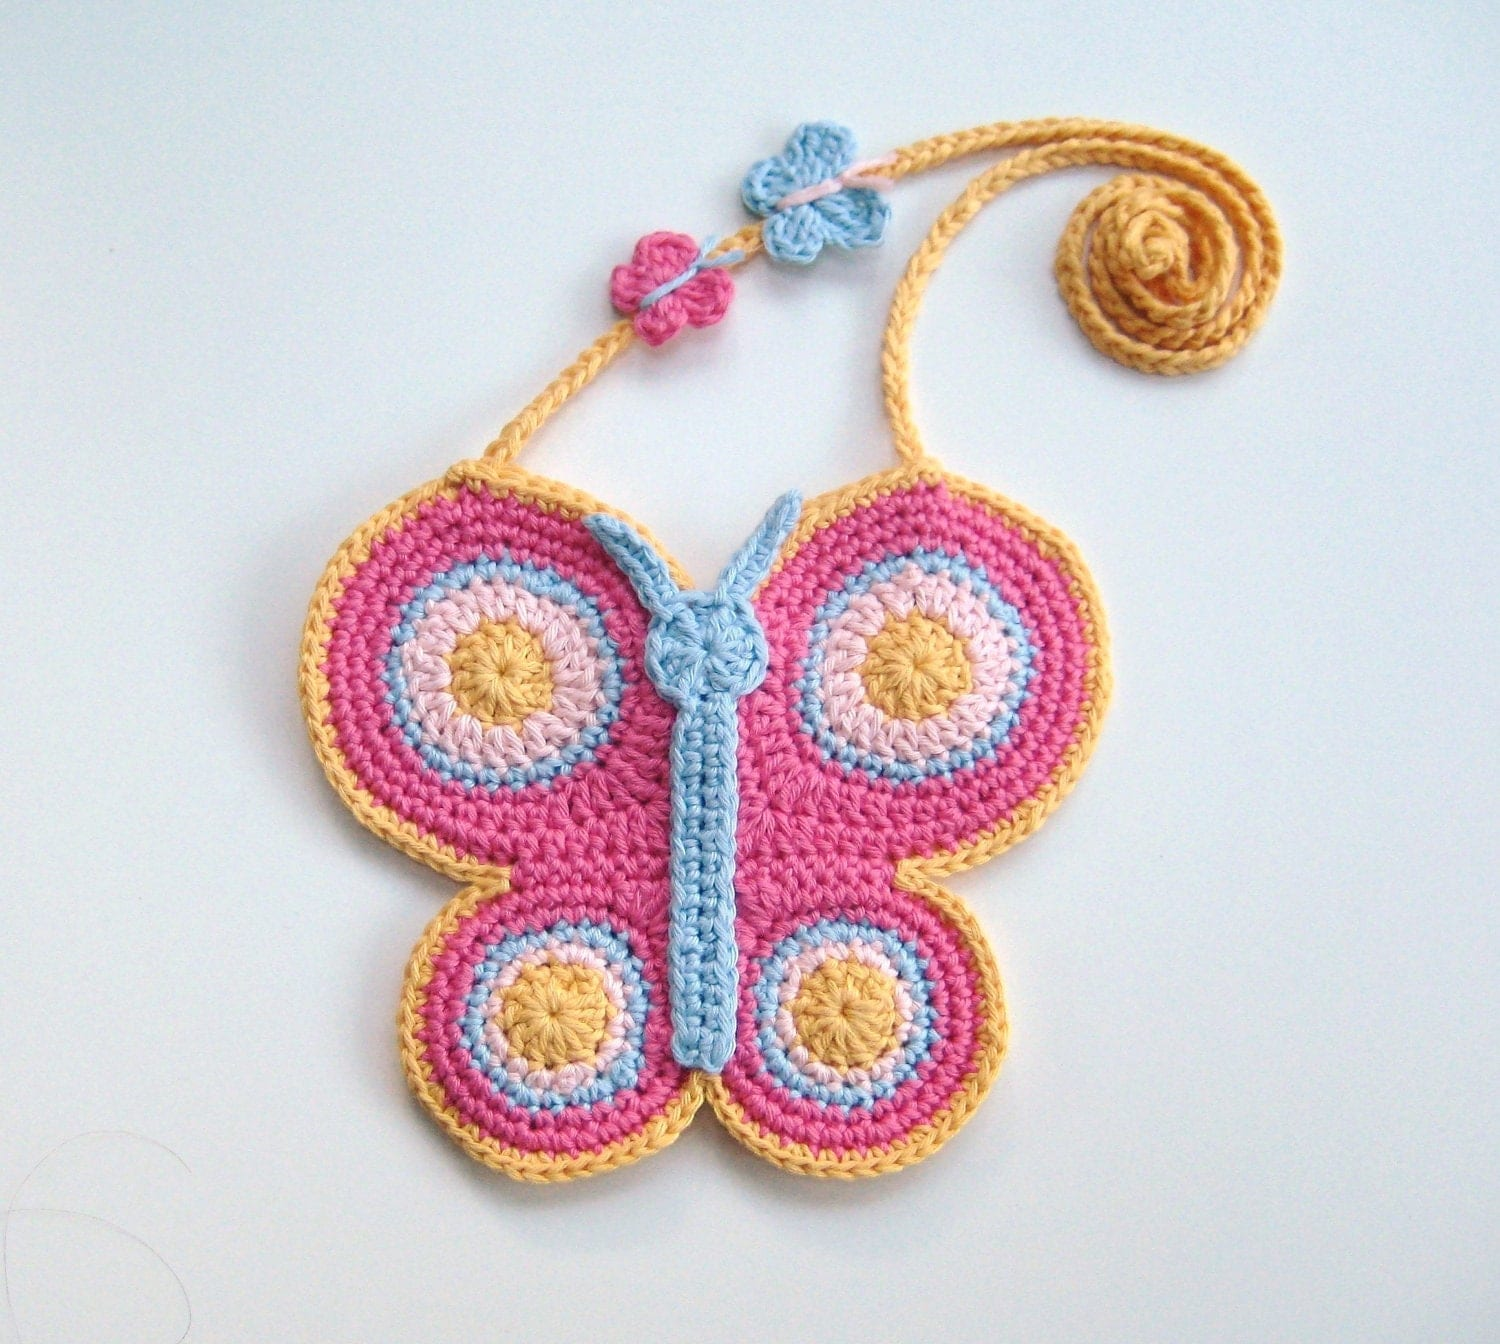 Crochet Bag For Girl : Crochet Pattern Butterfly purse bag INSTANT DOWNLOAD PDF